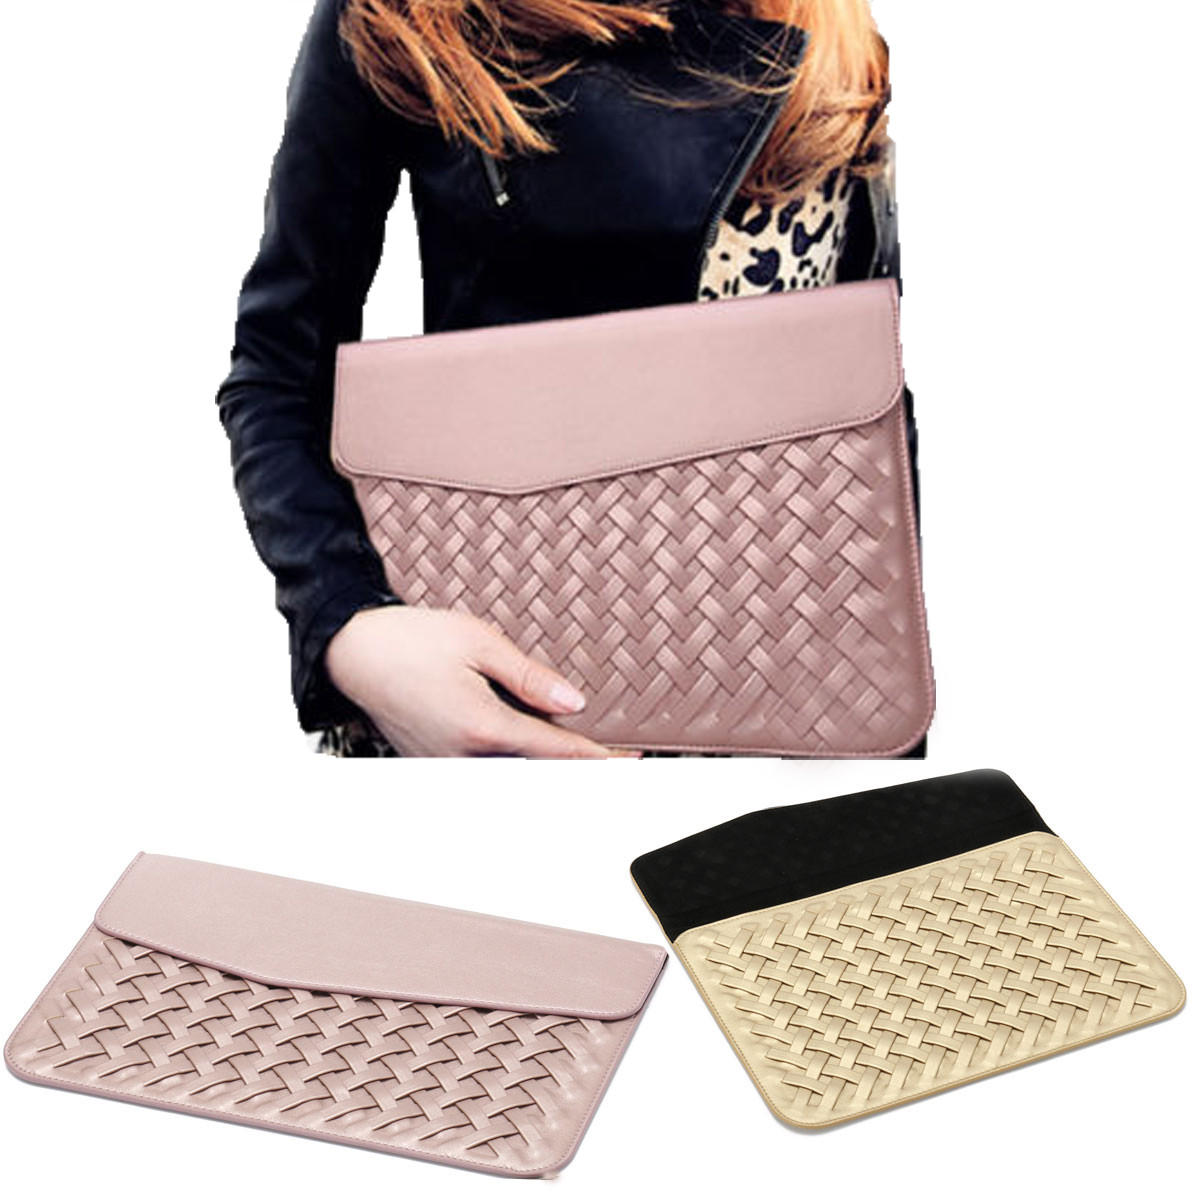 12 inch Weaving Laptop Bag PU Leather Case Cover Bag for Xiaomi Makbook Laptop